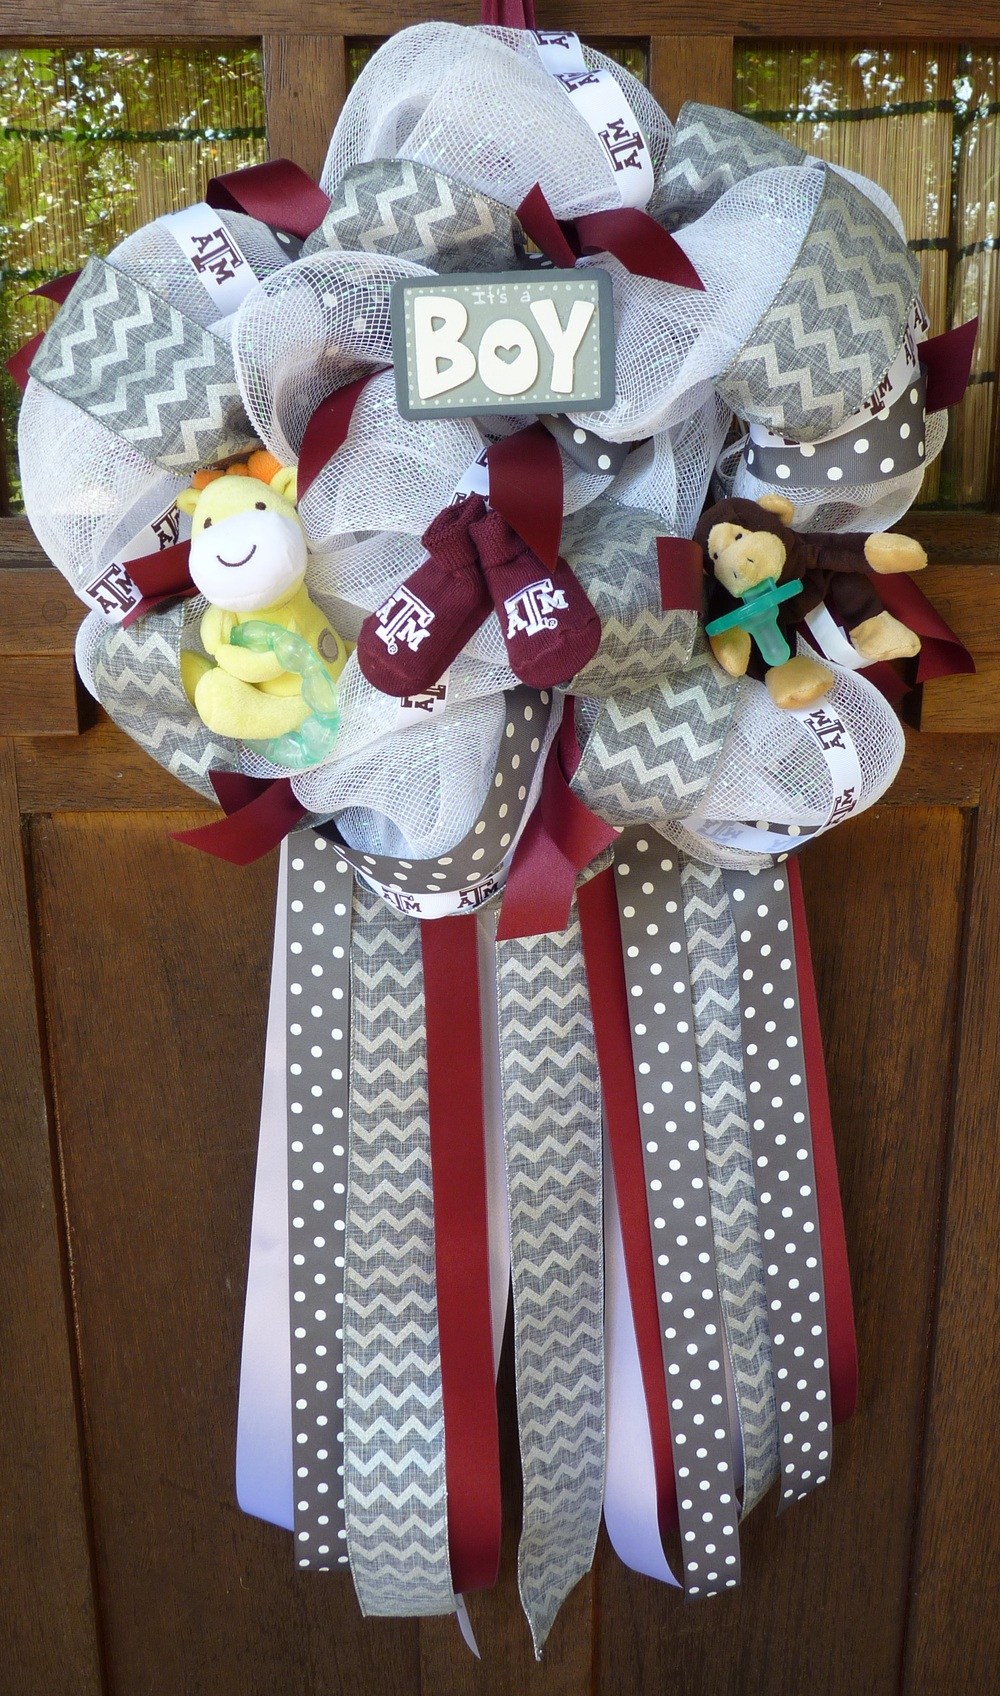 It's An Aggie Boy Wreath with hanging ribbon